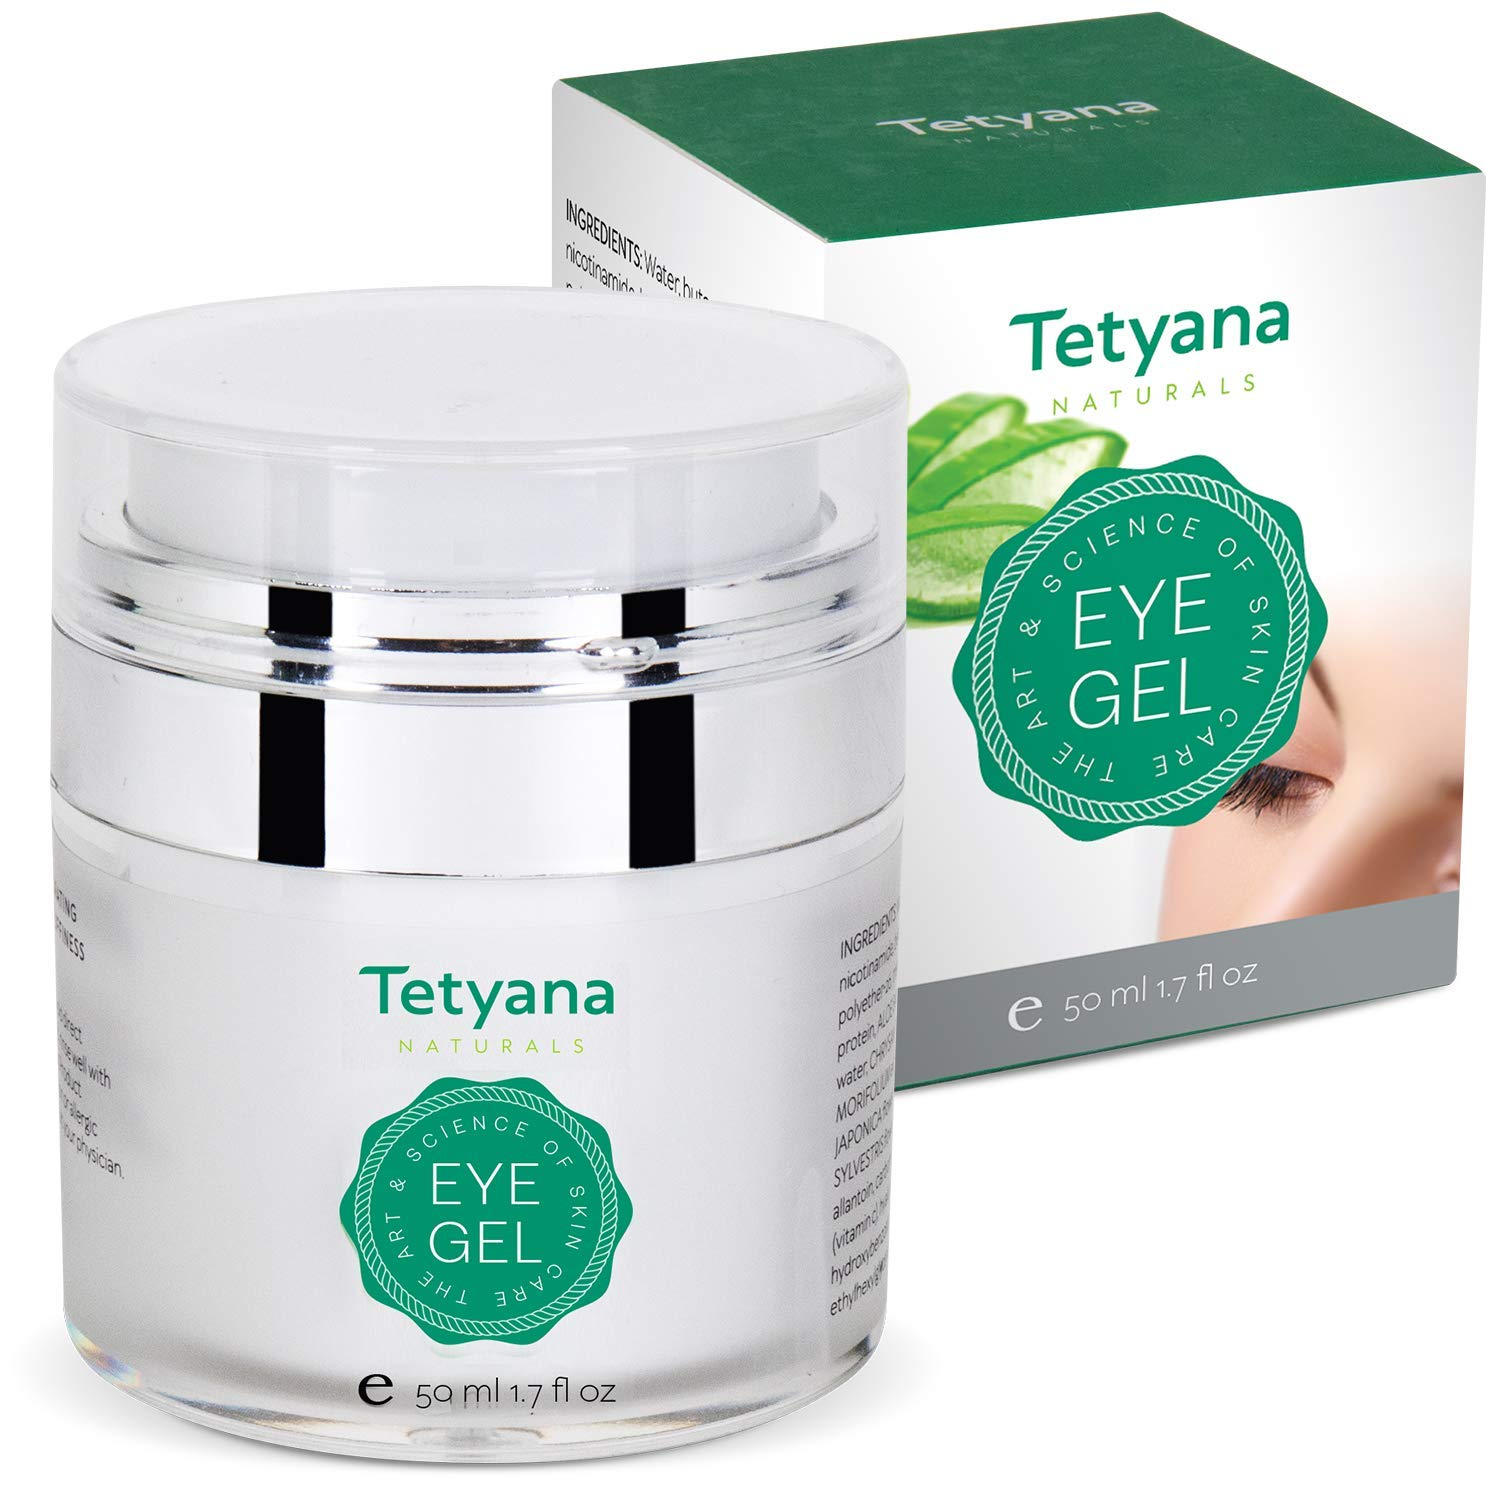 Tetyana naturals Eye Gel with Allantoin, Hyaluronic acid for Puffiness, Wrinkles, Dark Circles (50ml) by Tetyana naturals